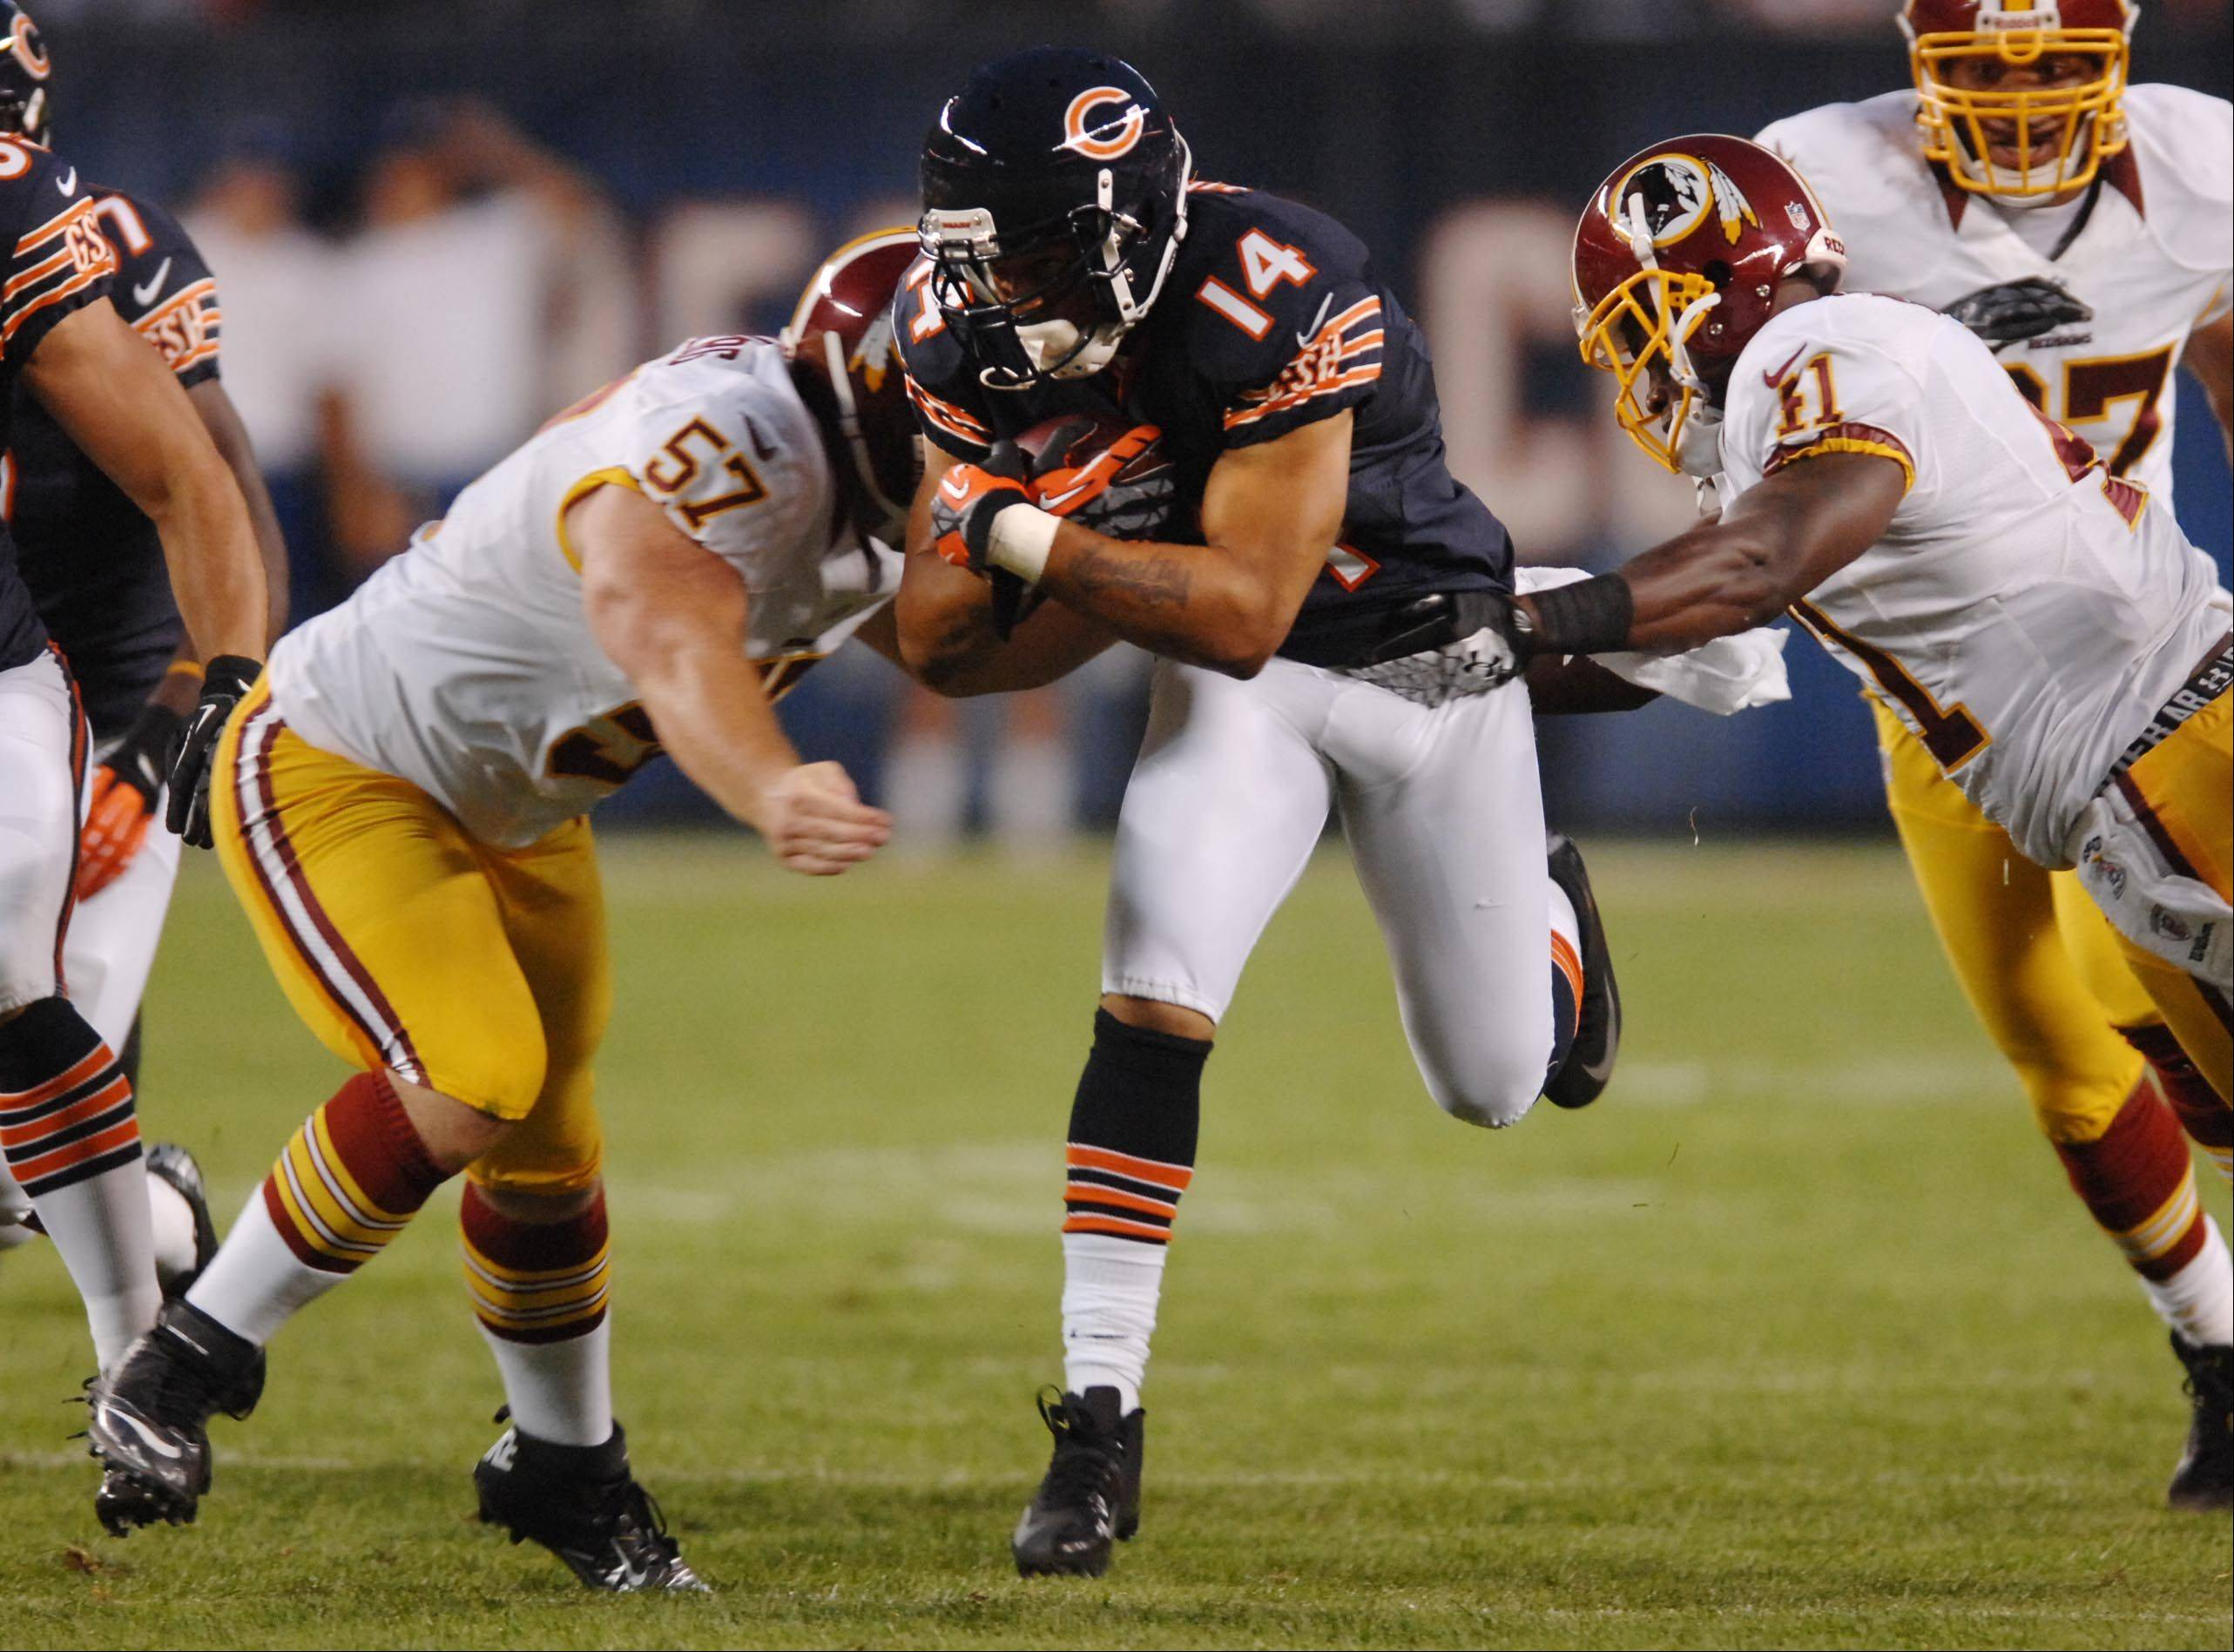 Bears wide receiver Eric Weems splits the defense Saturday against the Washington Redskins in the second preseason game at Soldier Field in Chicago.